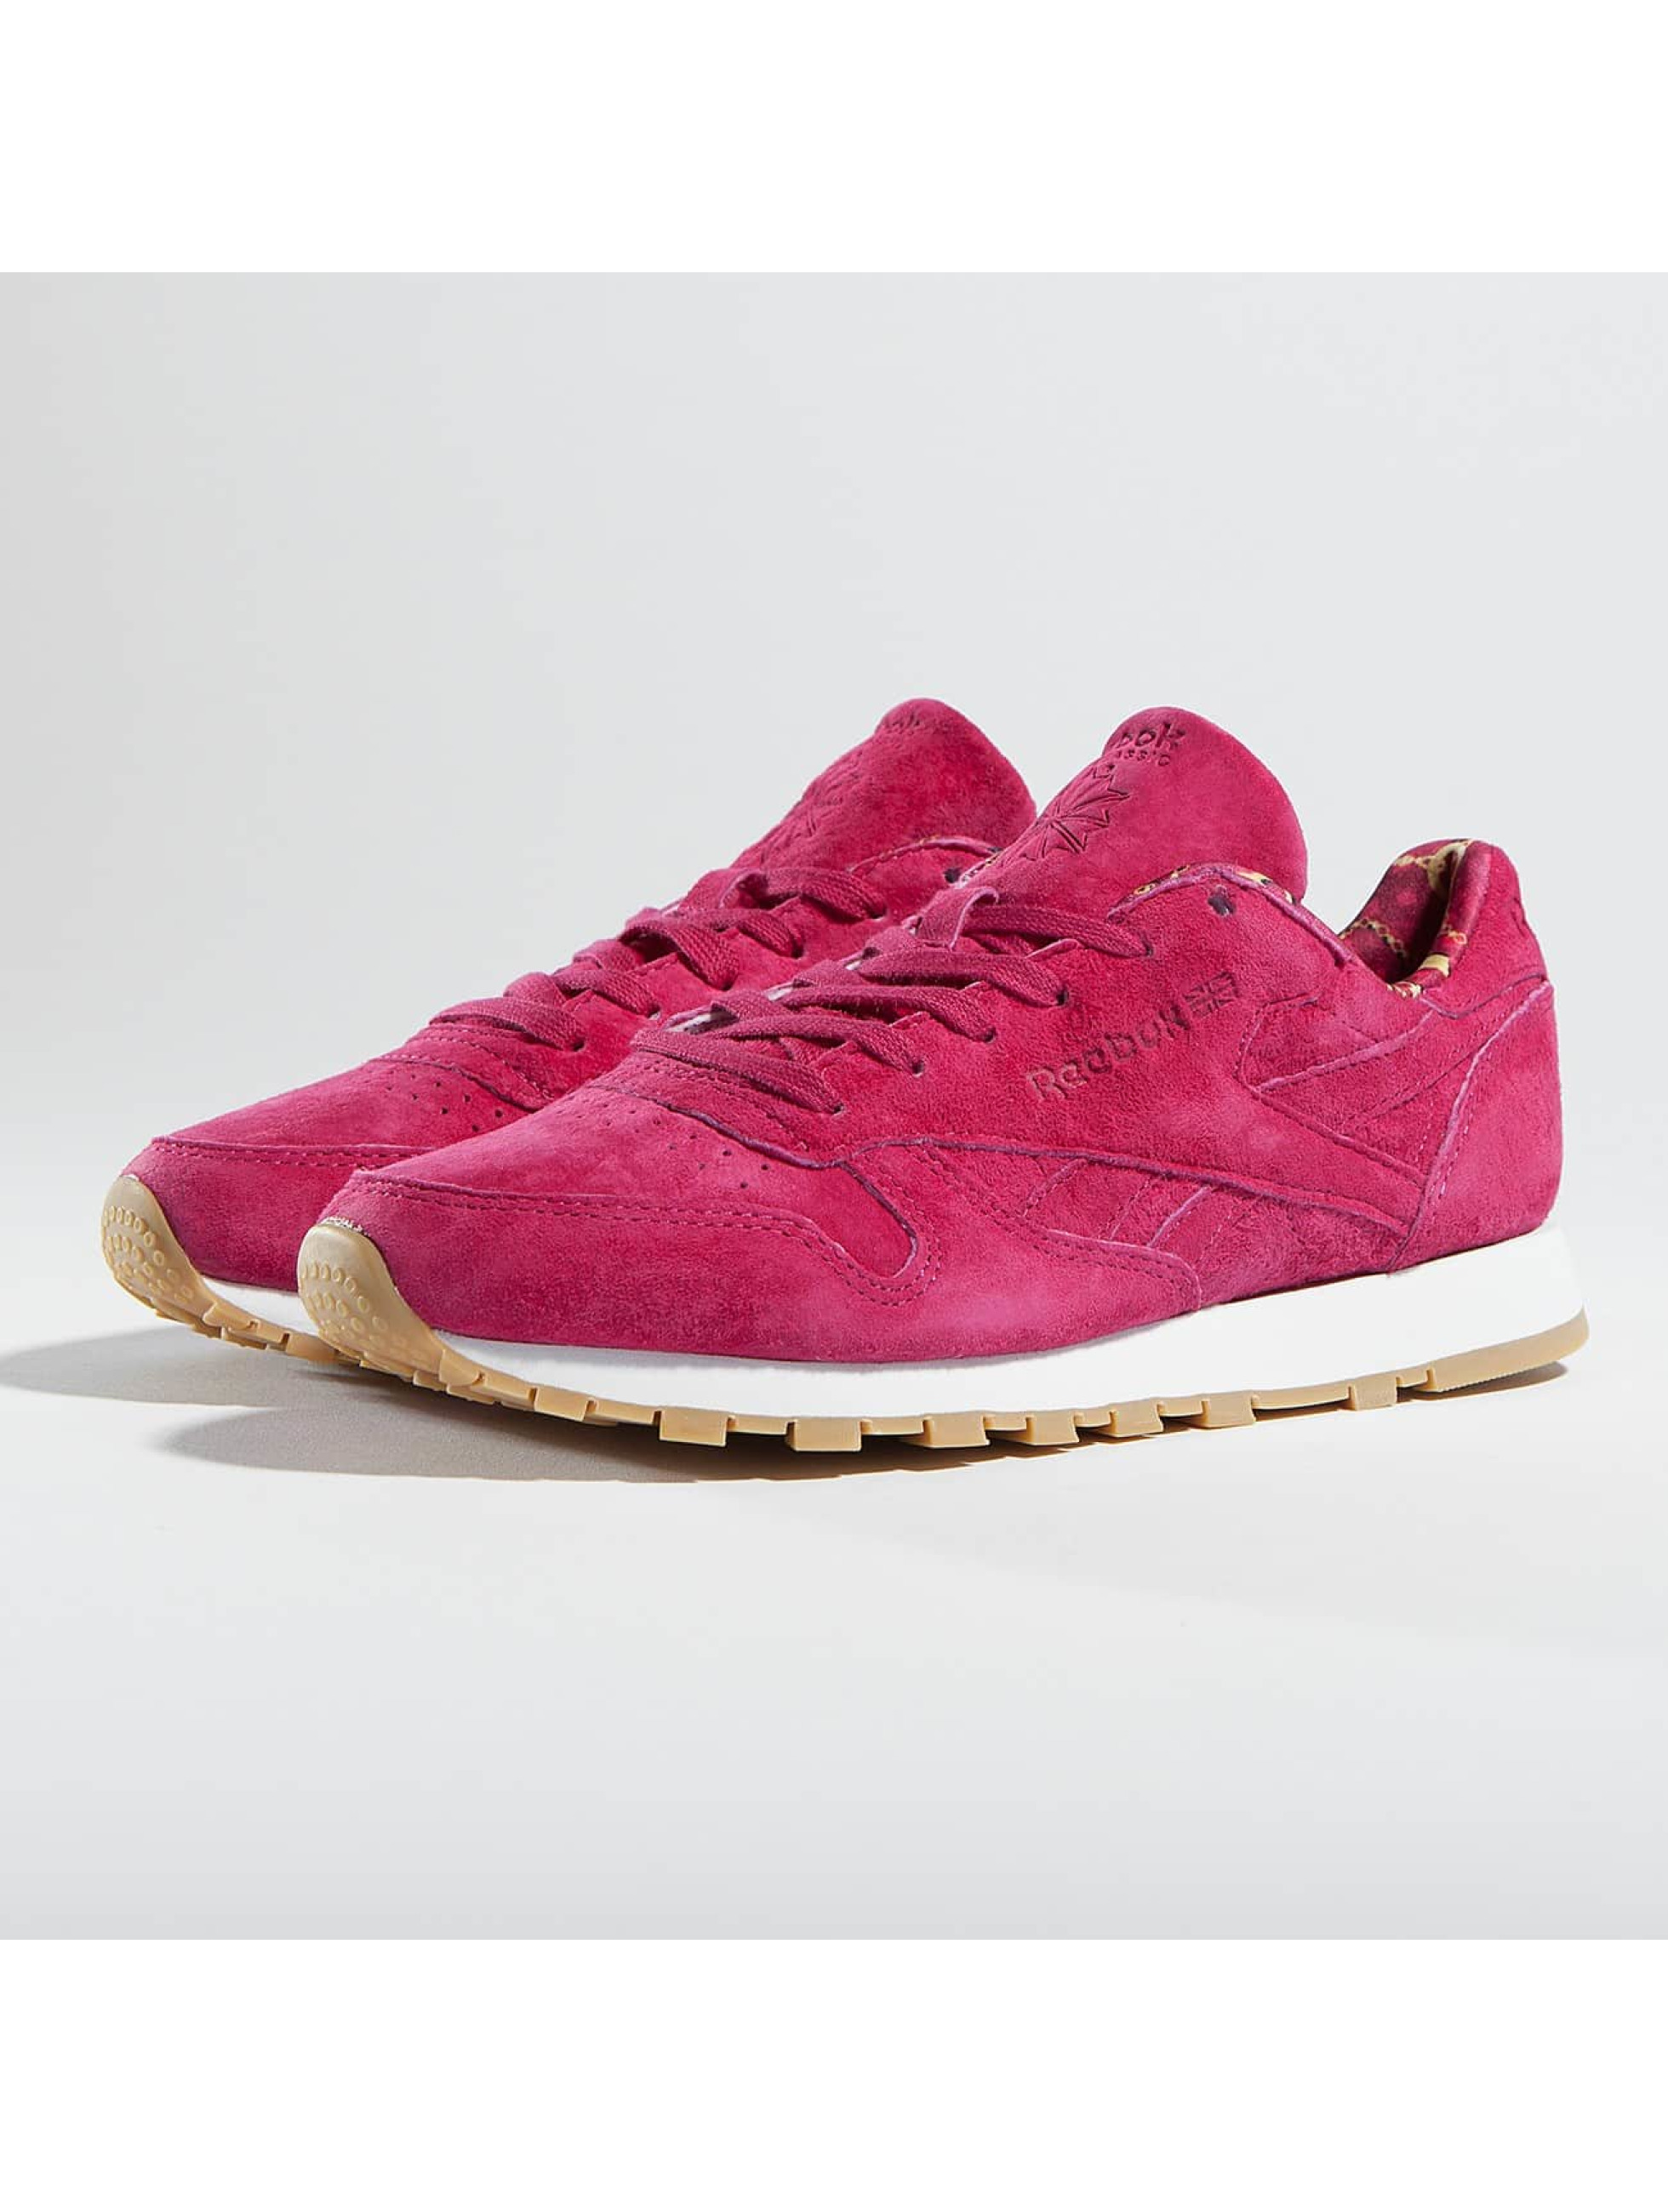 Reebok Classic Leather Sneakers Manic Cherry/White Gum Sale Angebote Sergen